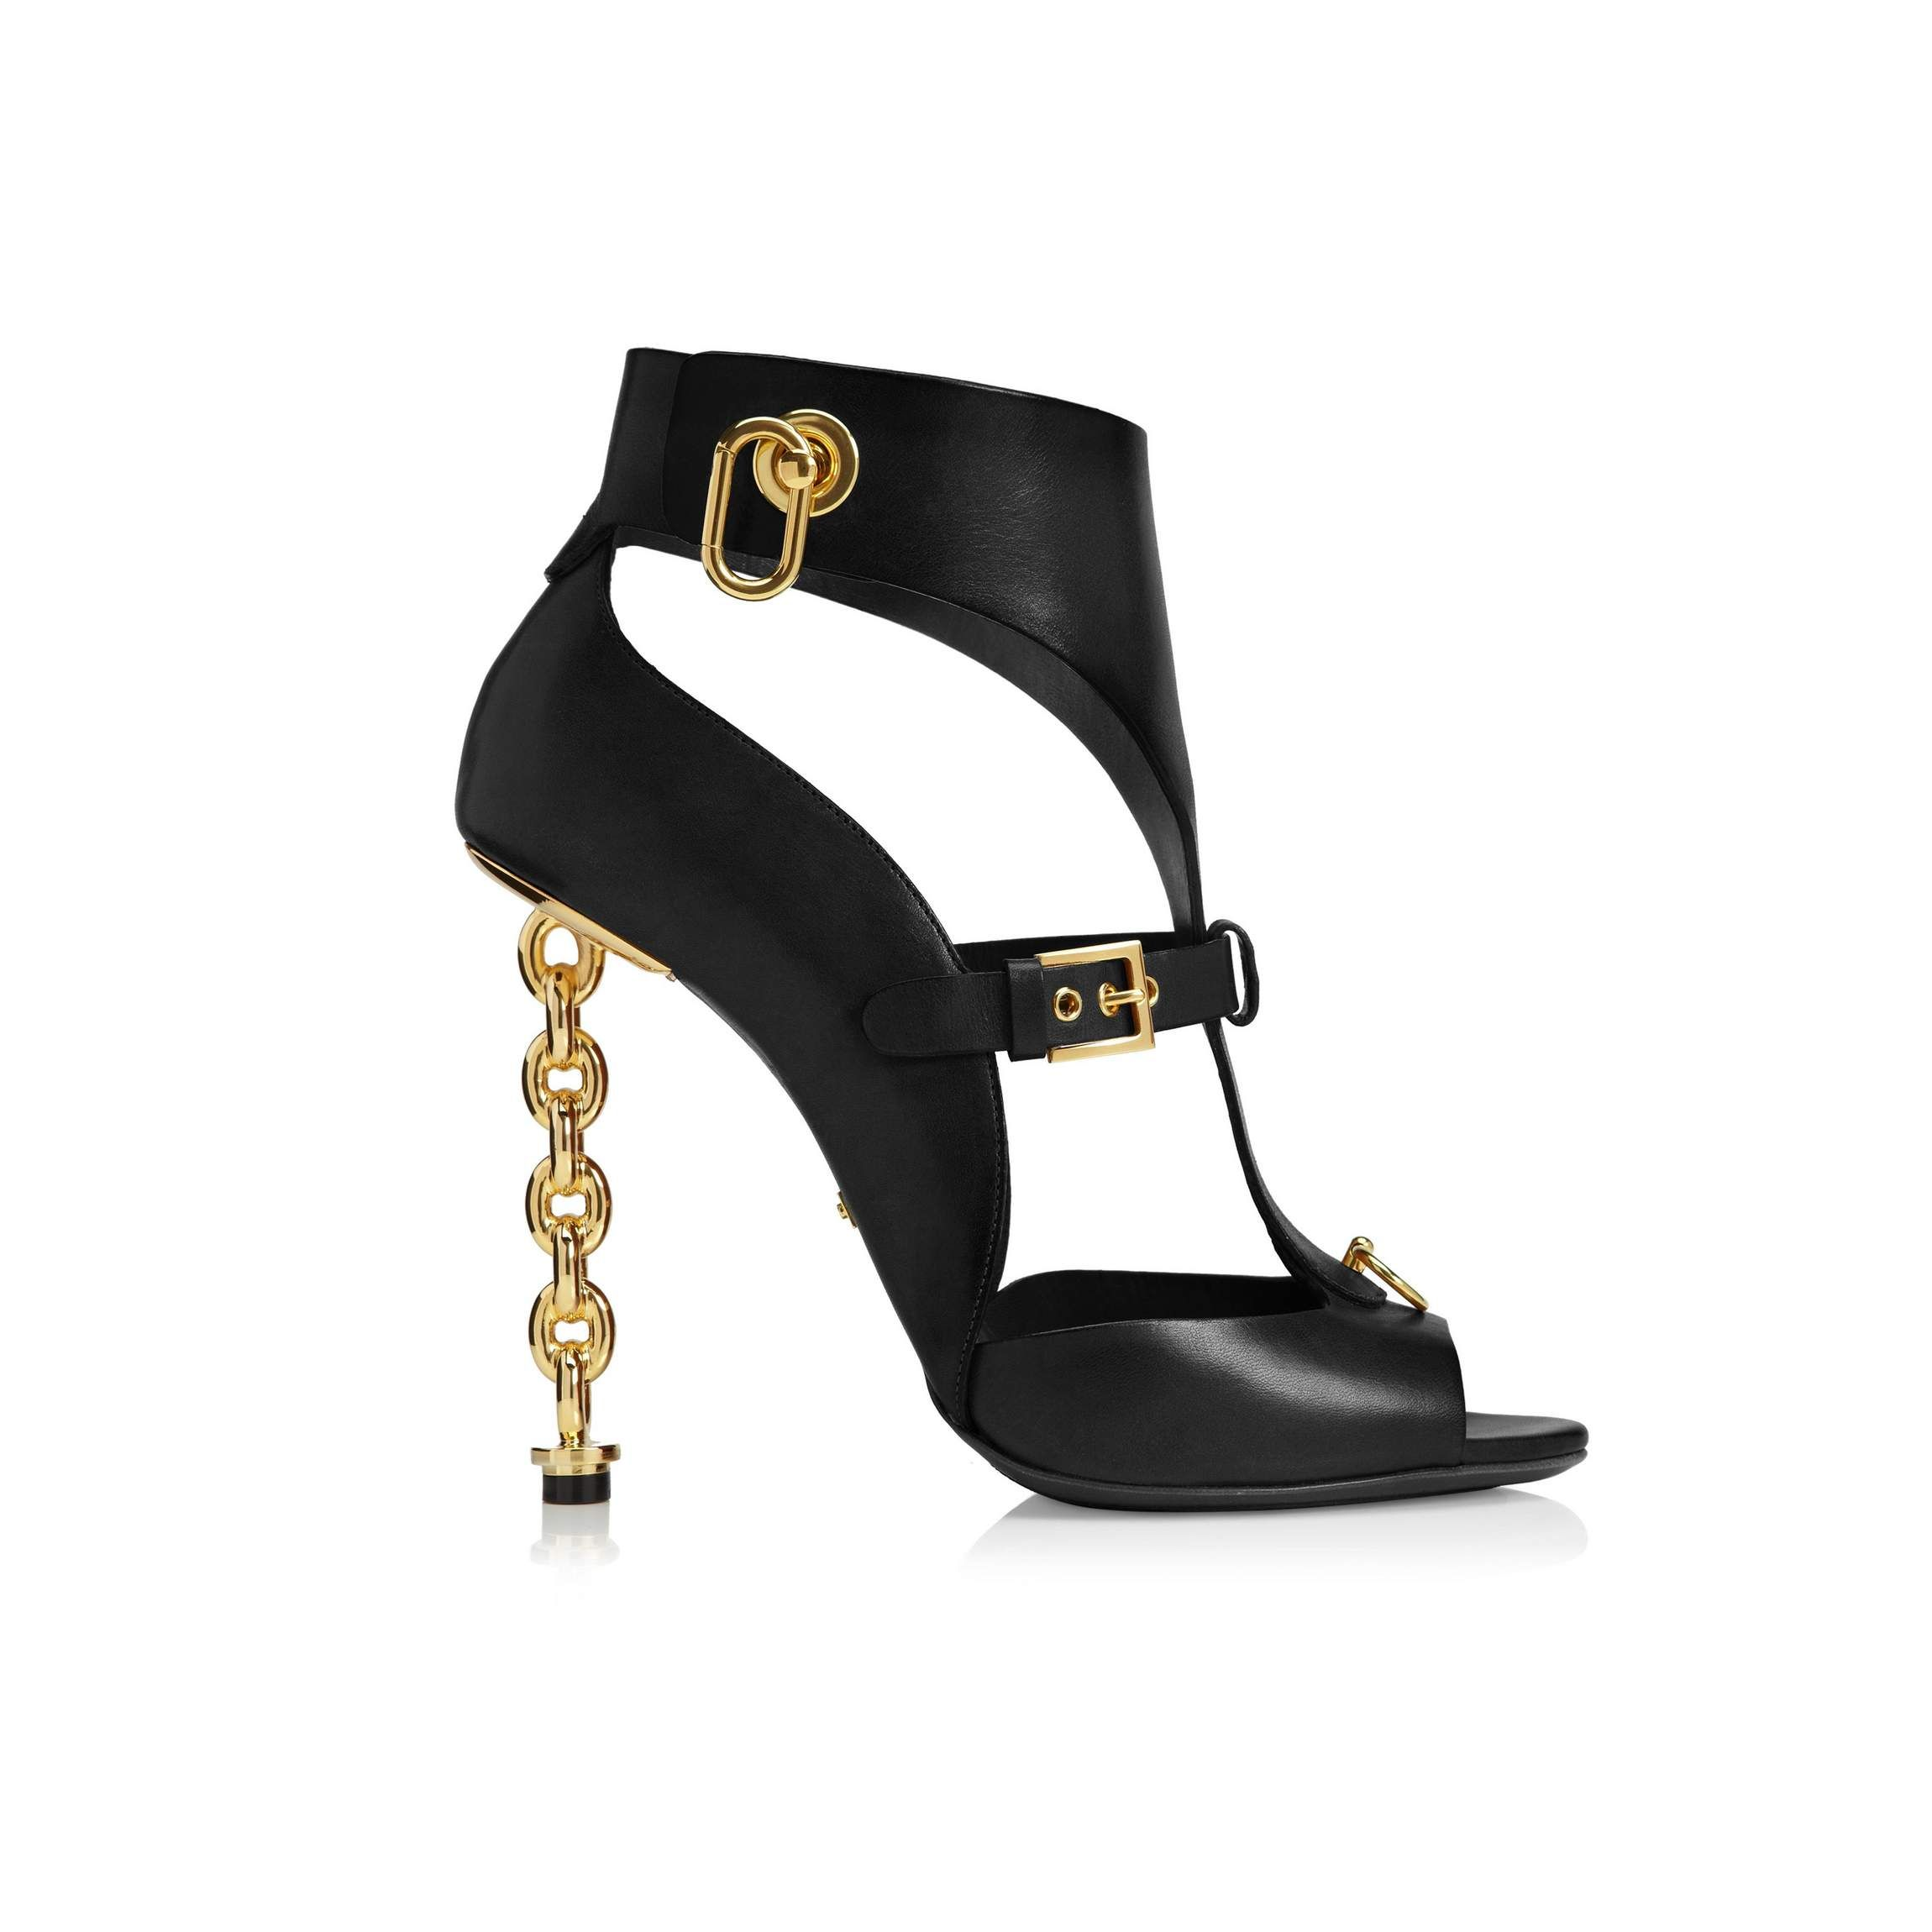 0841505a241 Leather Gladiator Sandal with Chain Heel - Tom Ford